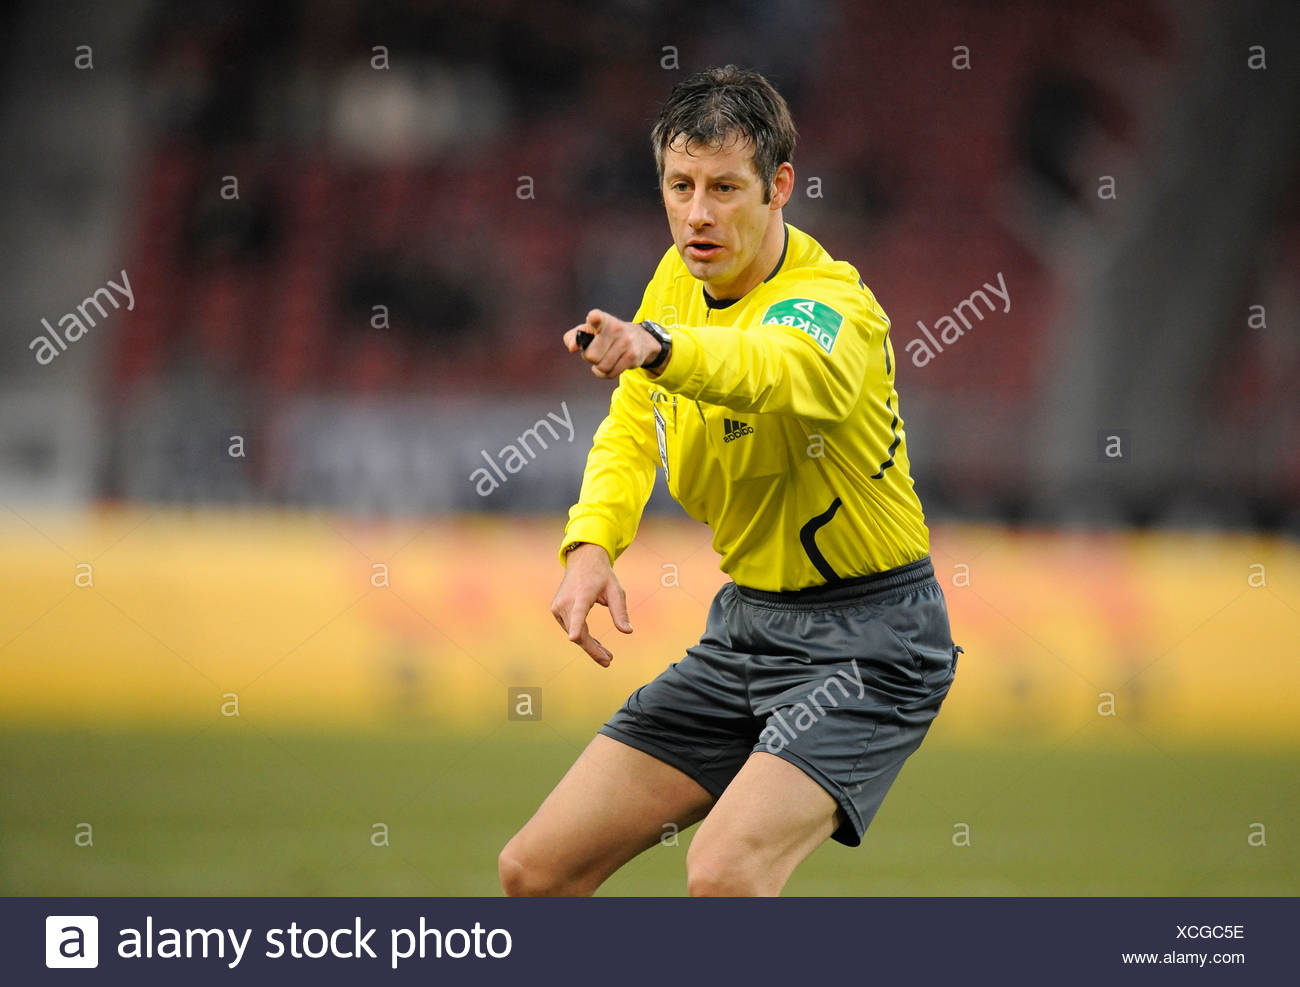 Wolfgang Stark referee indicating to continue the game Stock Photo